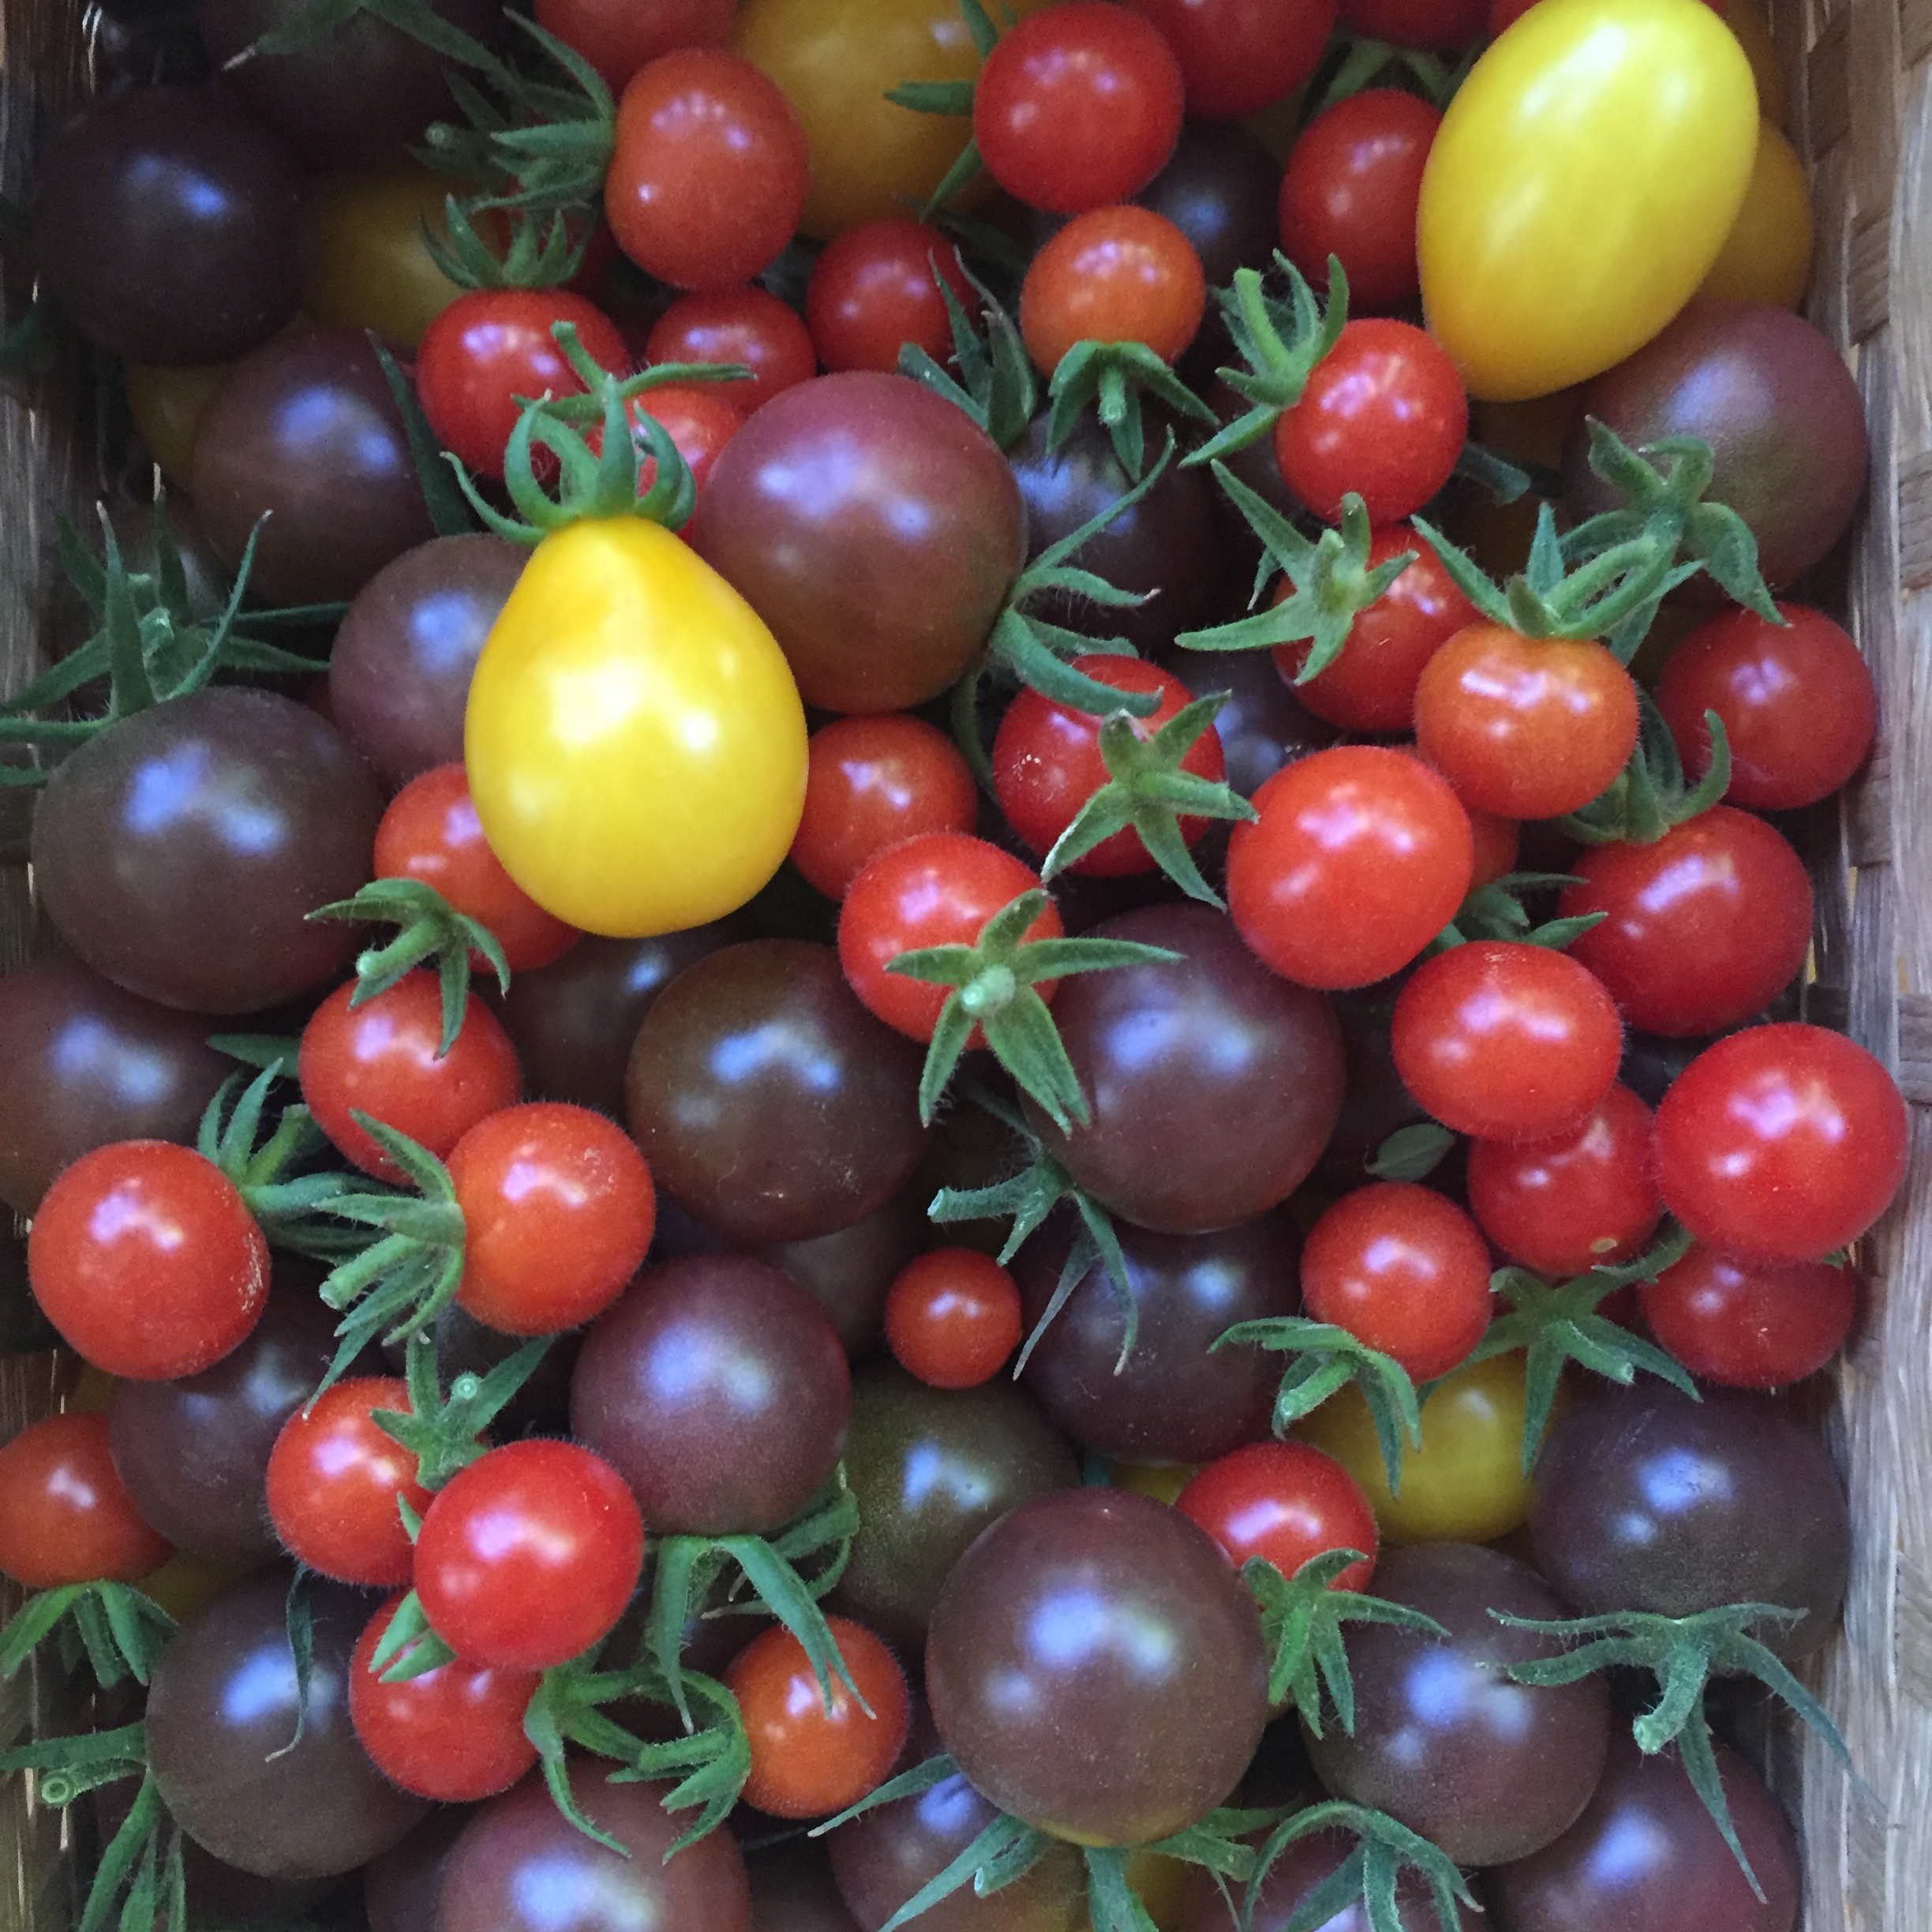 a basket of cherry tomatoes; Mexico Midget, Black Cherry, and Yellow Pear